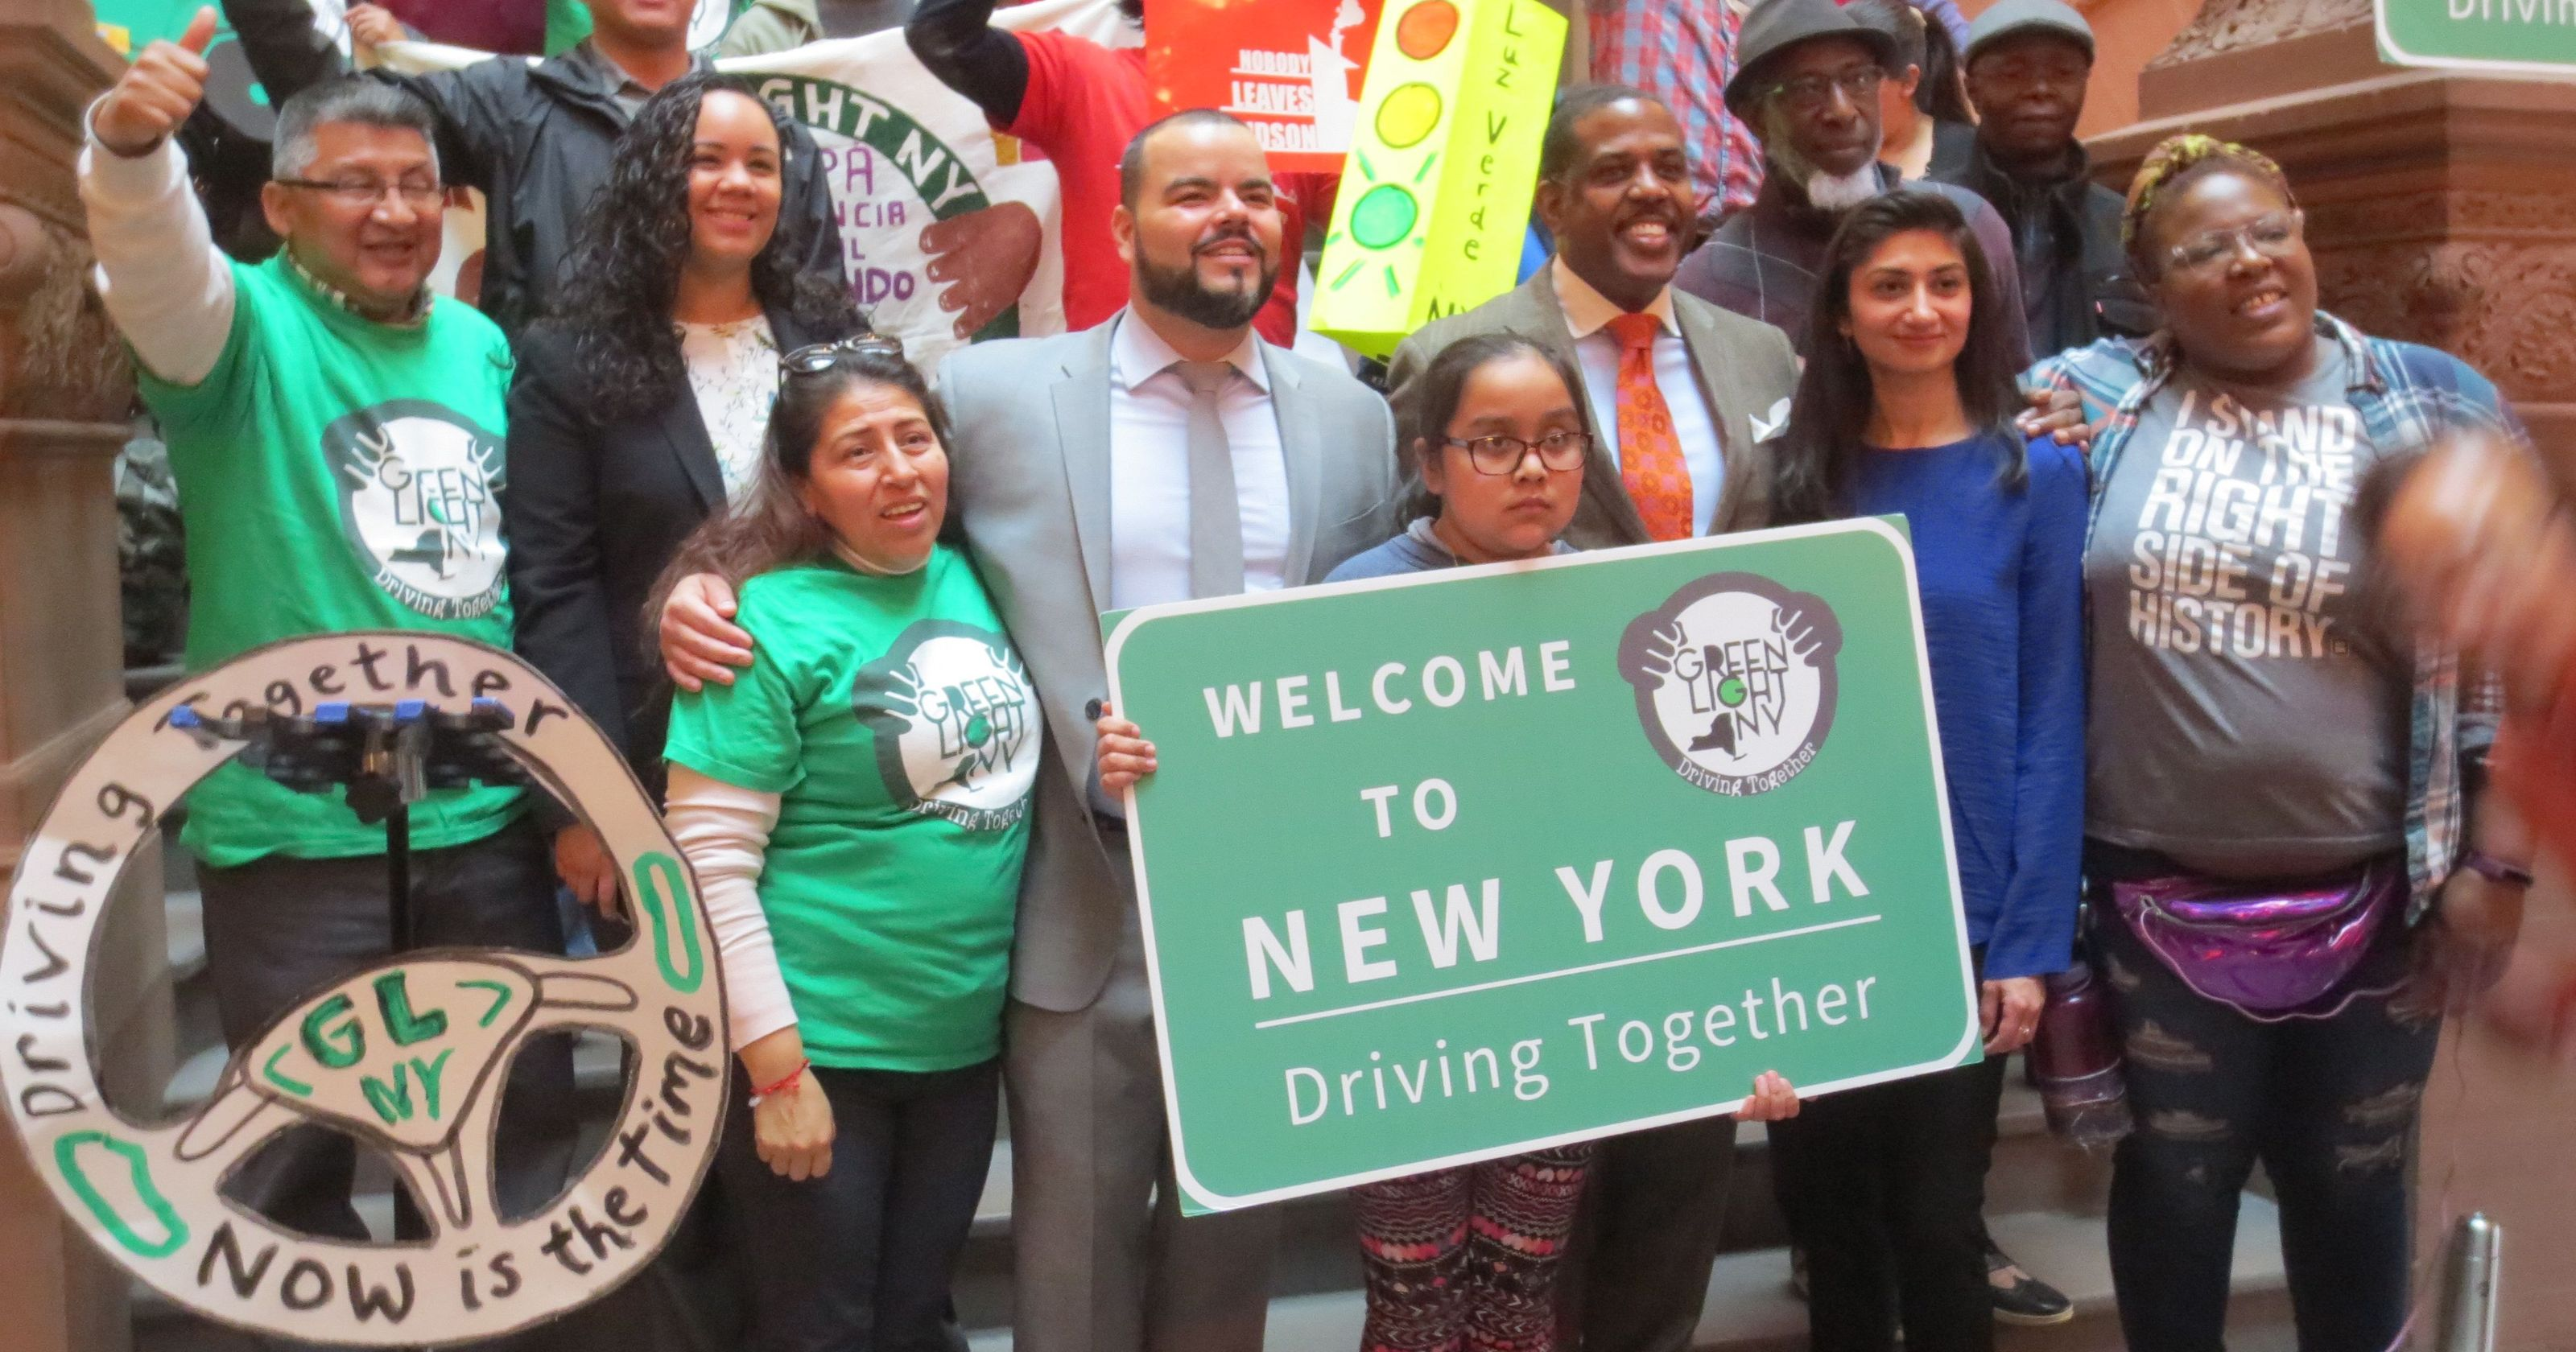 Should undocumented immigrants receive driver's licenses?